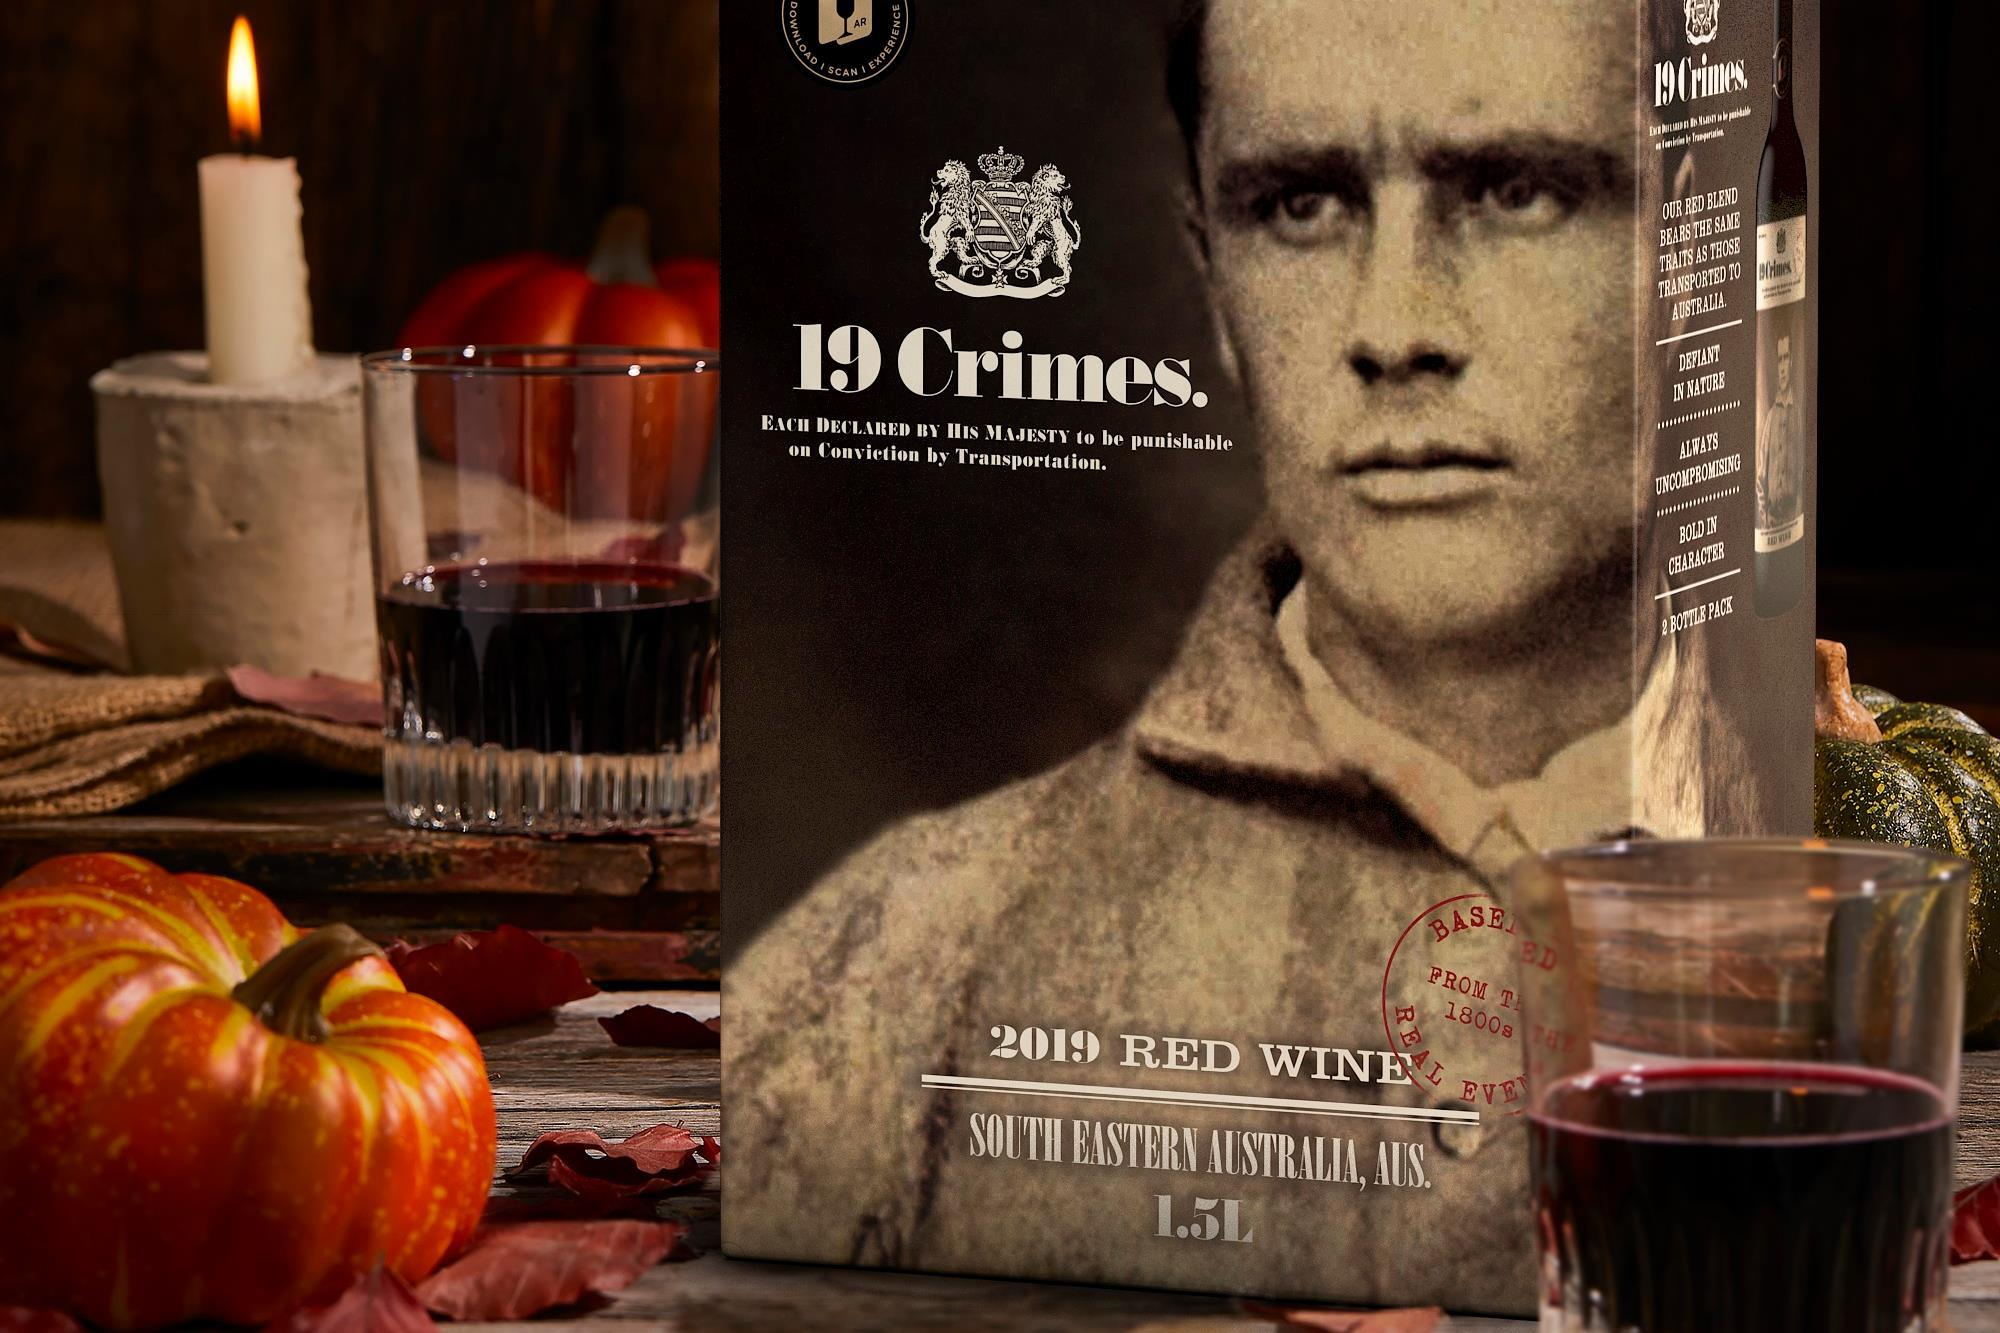 Treasury Wine Estates Pours 19 Crimes Into Bag-in-box Format photo